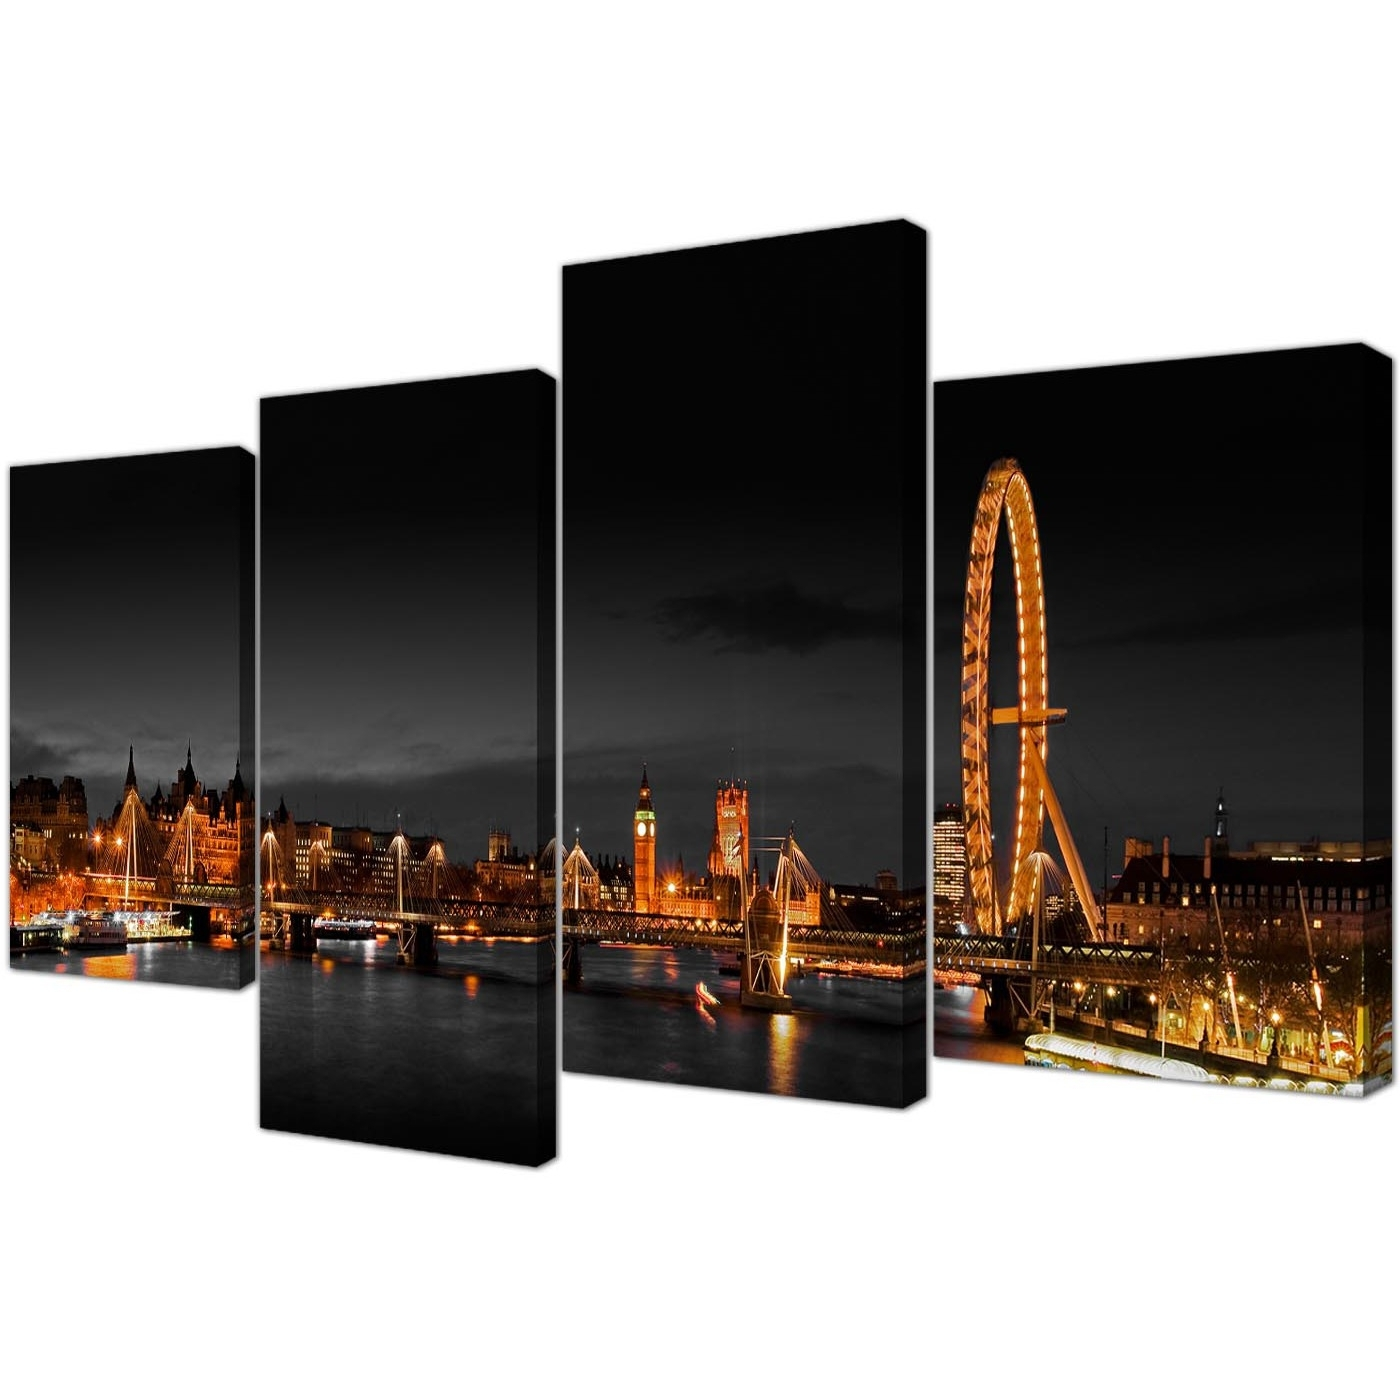 Canvas Wall Art Of Night Time London Eye For Your Office – Set Of 4 Pertaining To Famous London Wall Art (View 3 of 15)